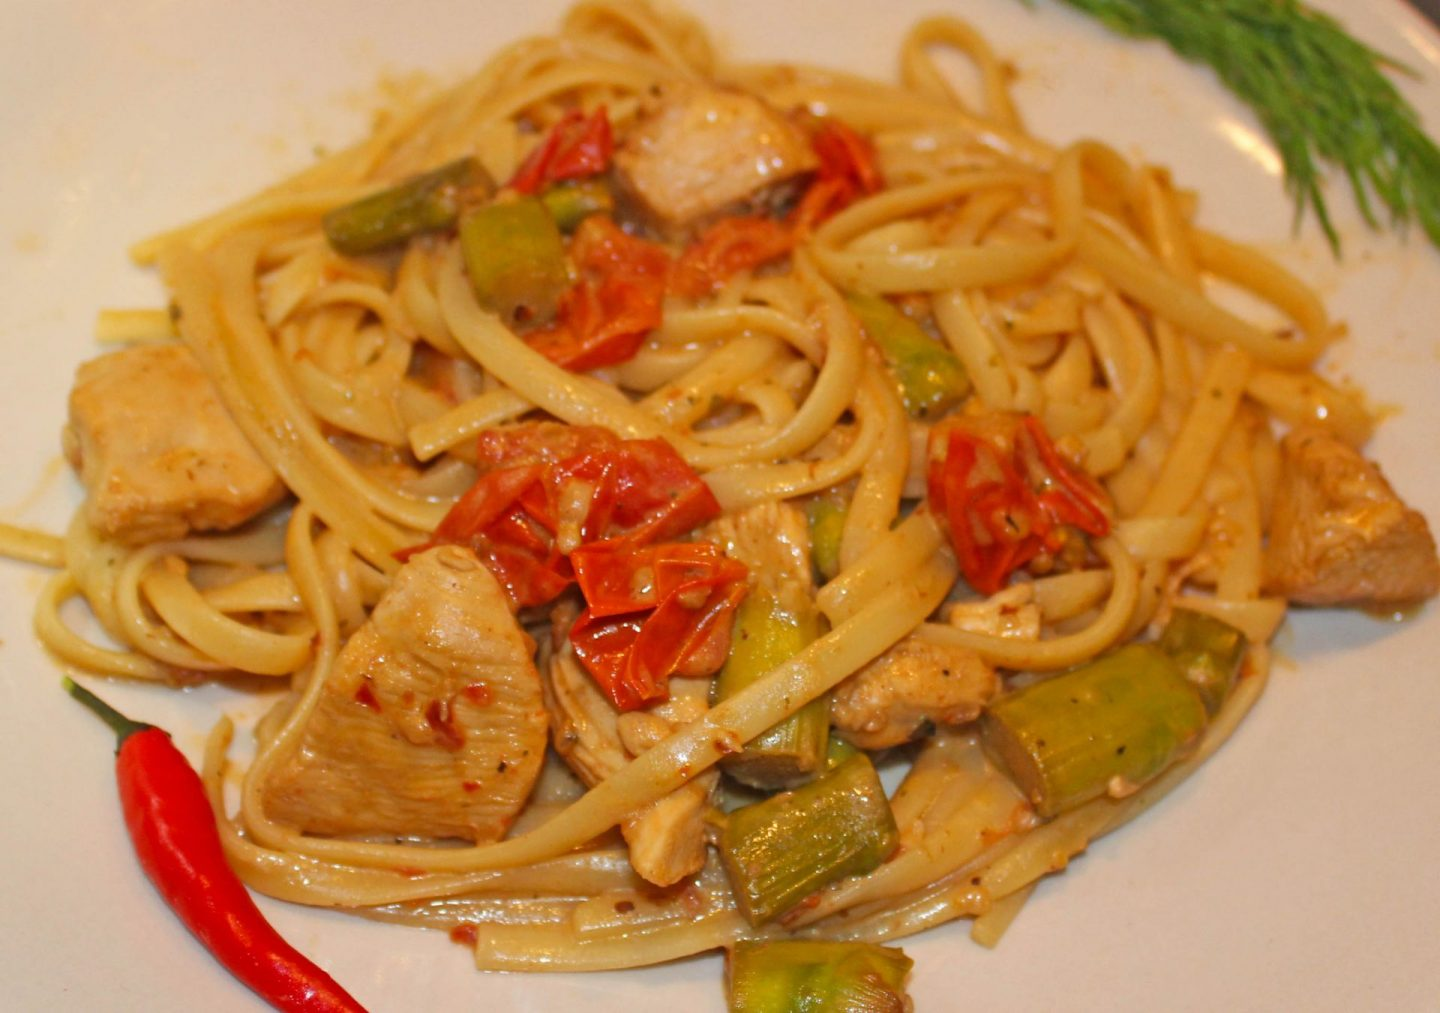 Cuban prawn pasta, adapted with chicken